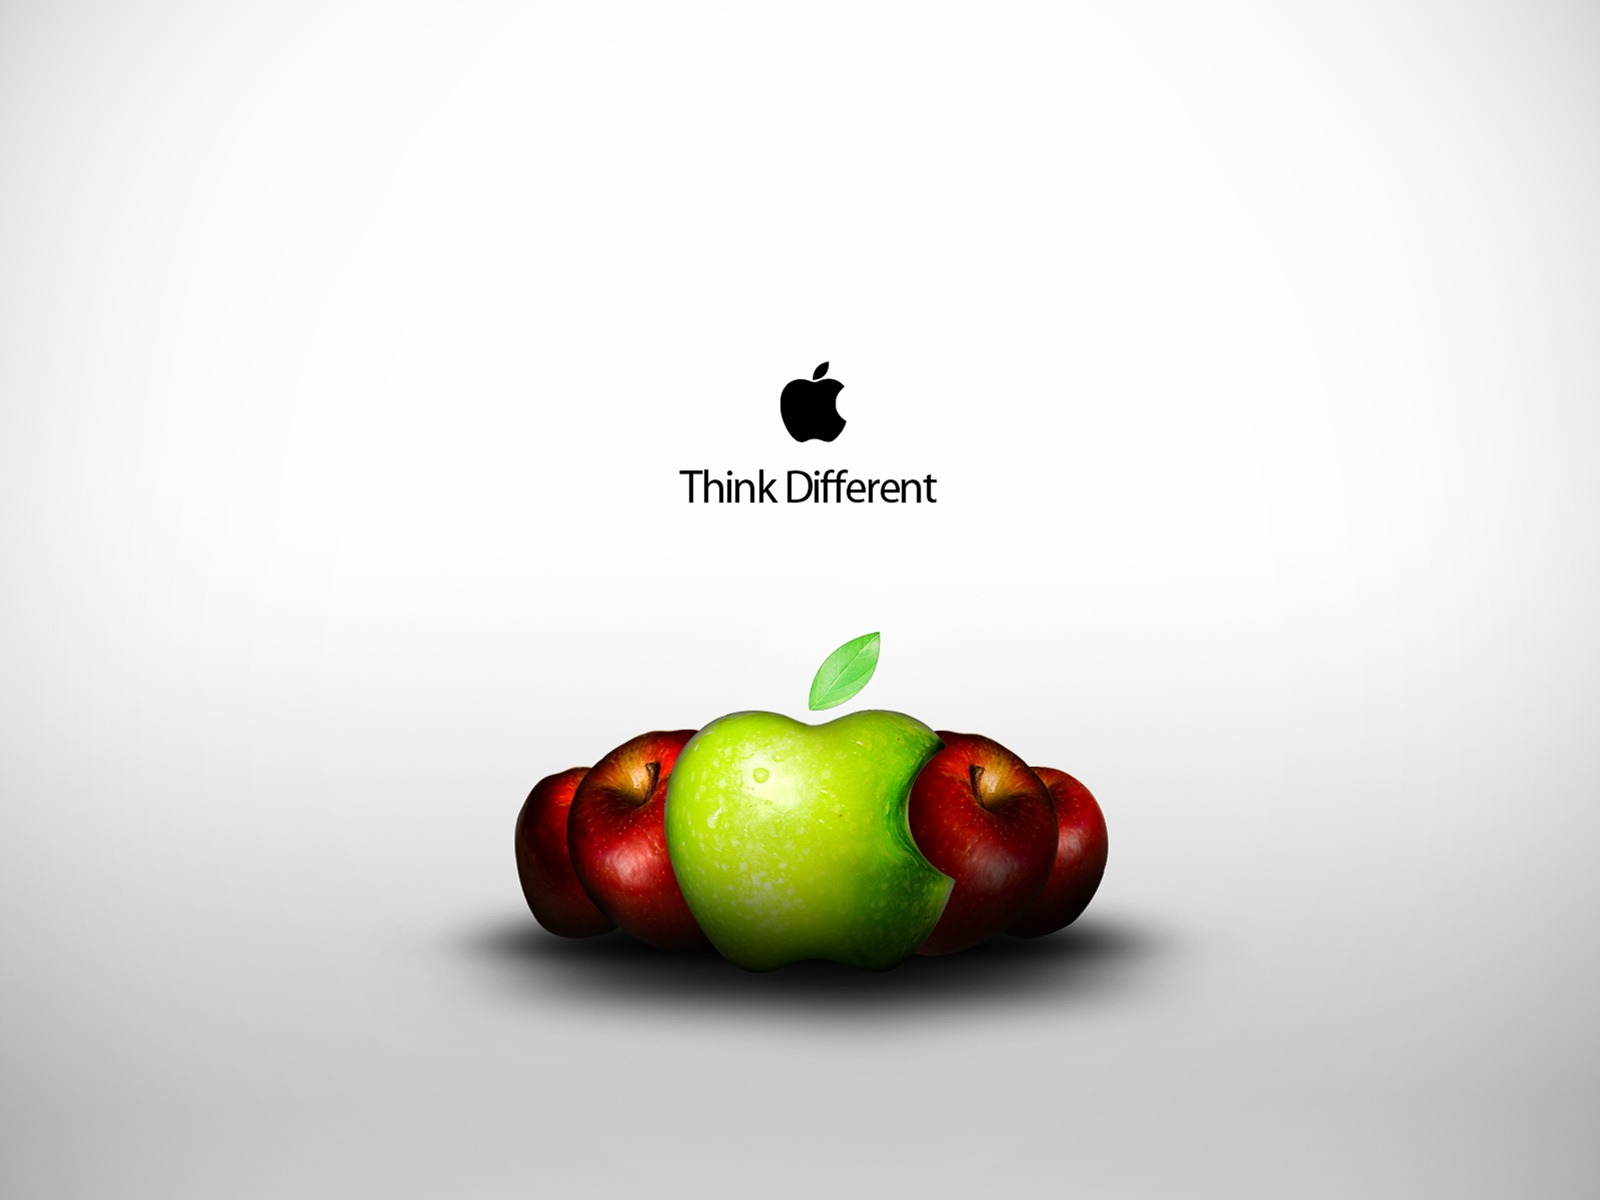 Apple Think Different Wallpaper Apple Computers Wallpapers In Jpg